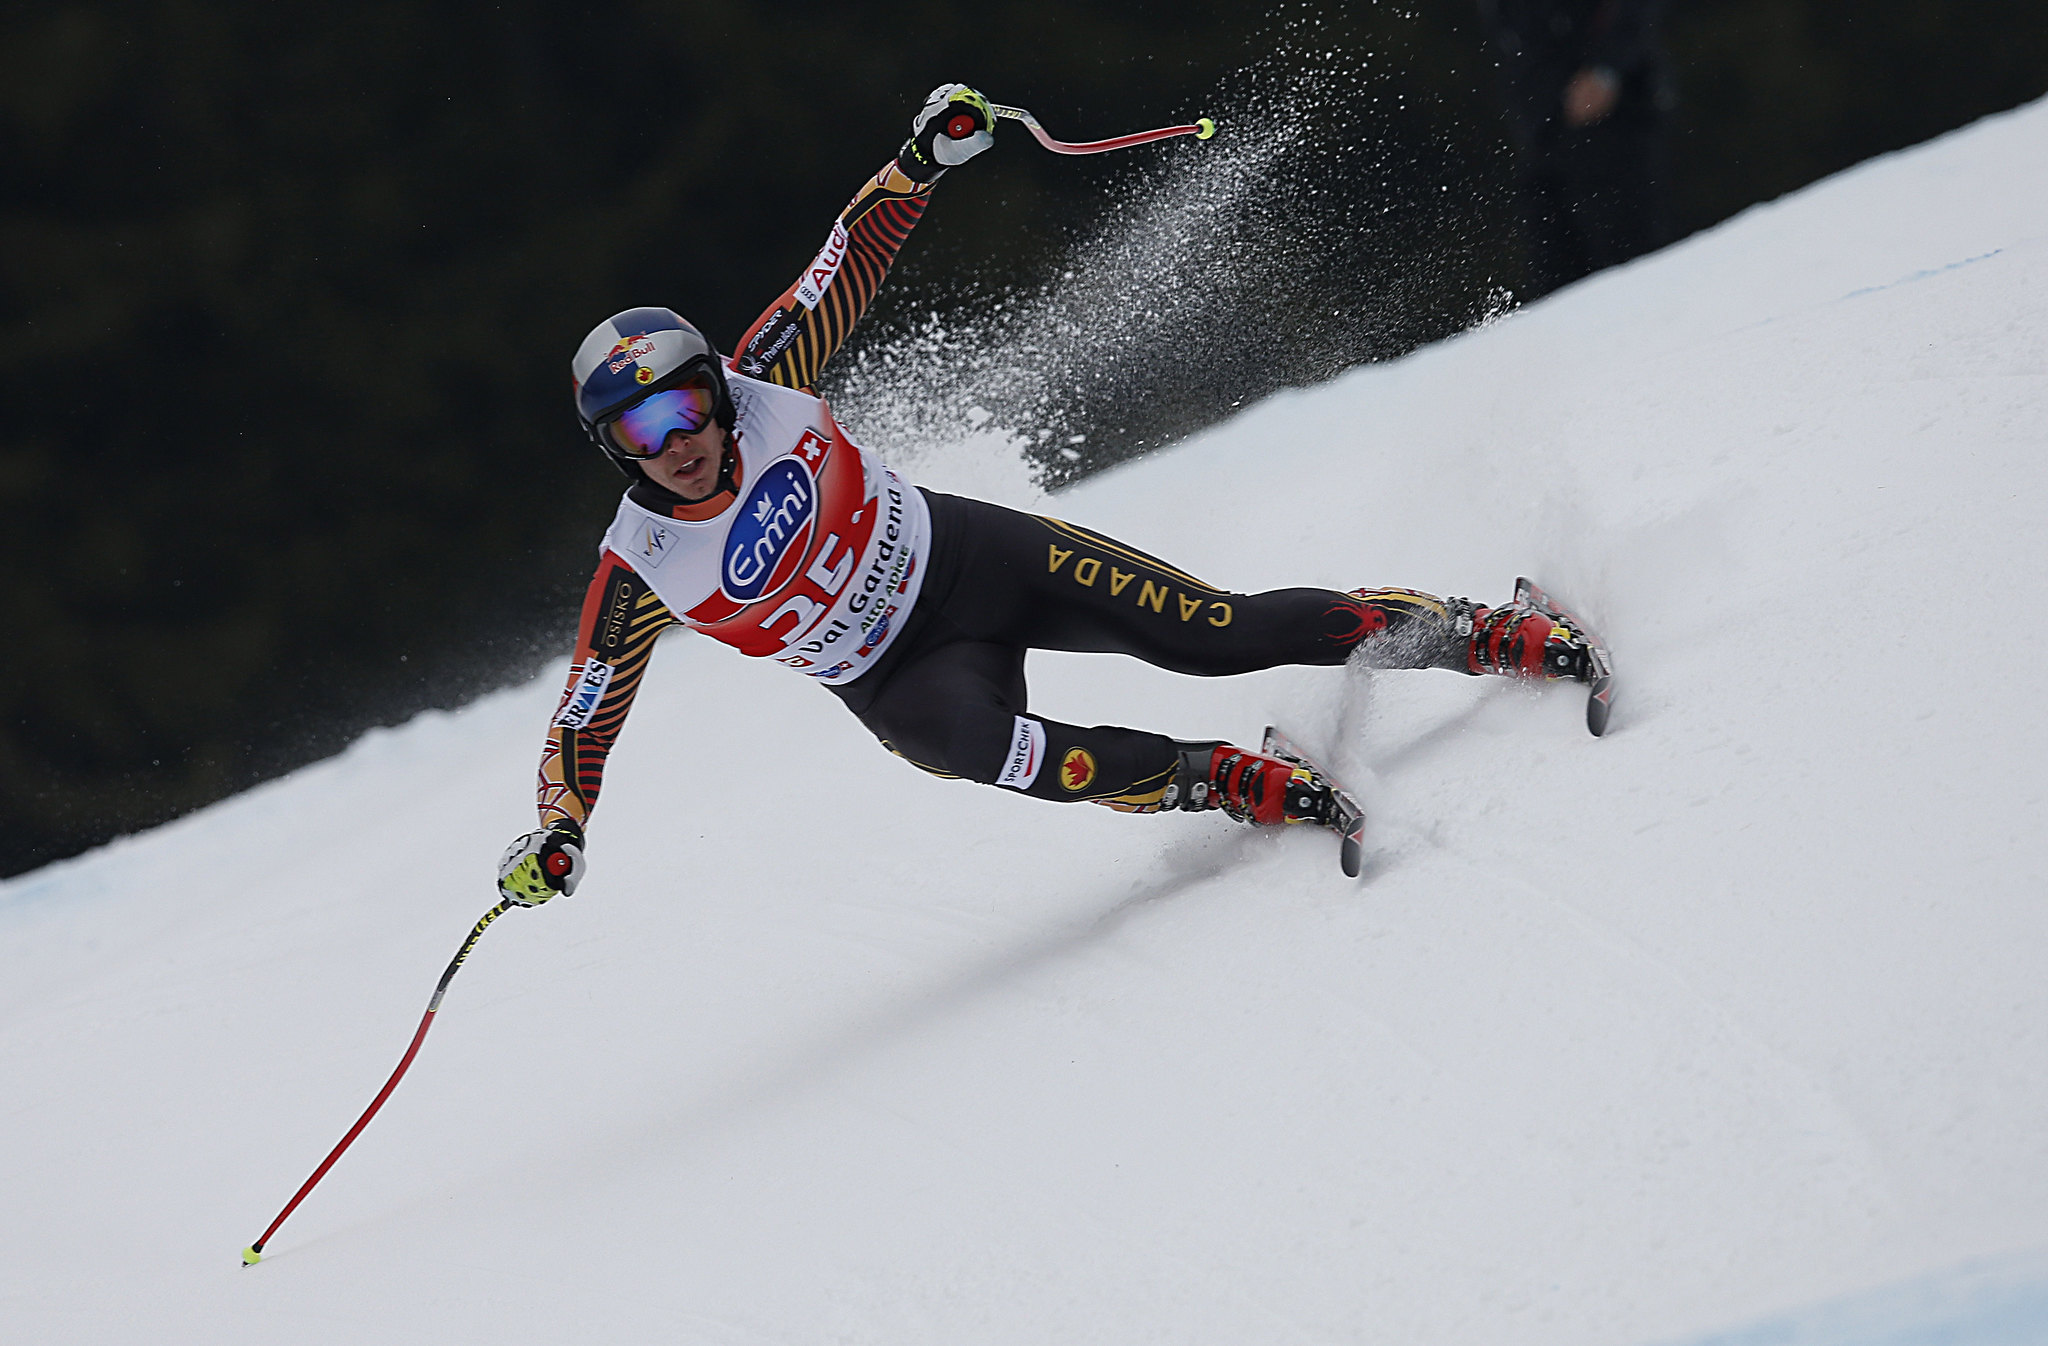 Erik Guay enroute to a 6th place finish in the Super-G in Val Gardena, ITA